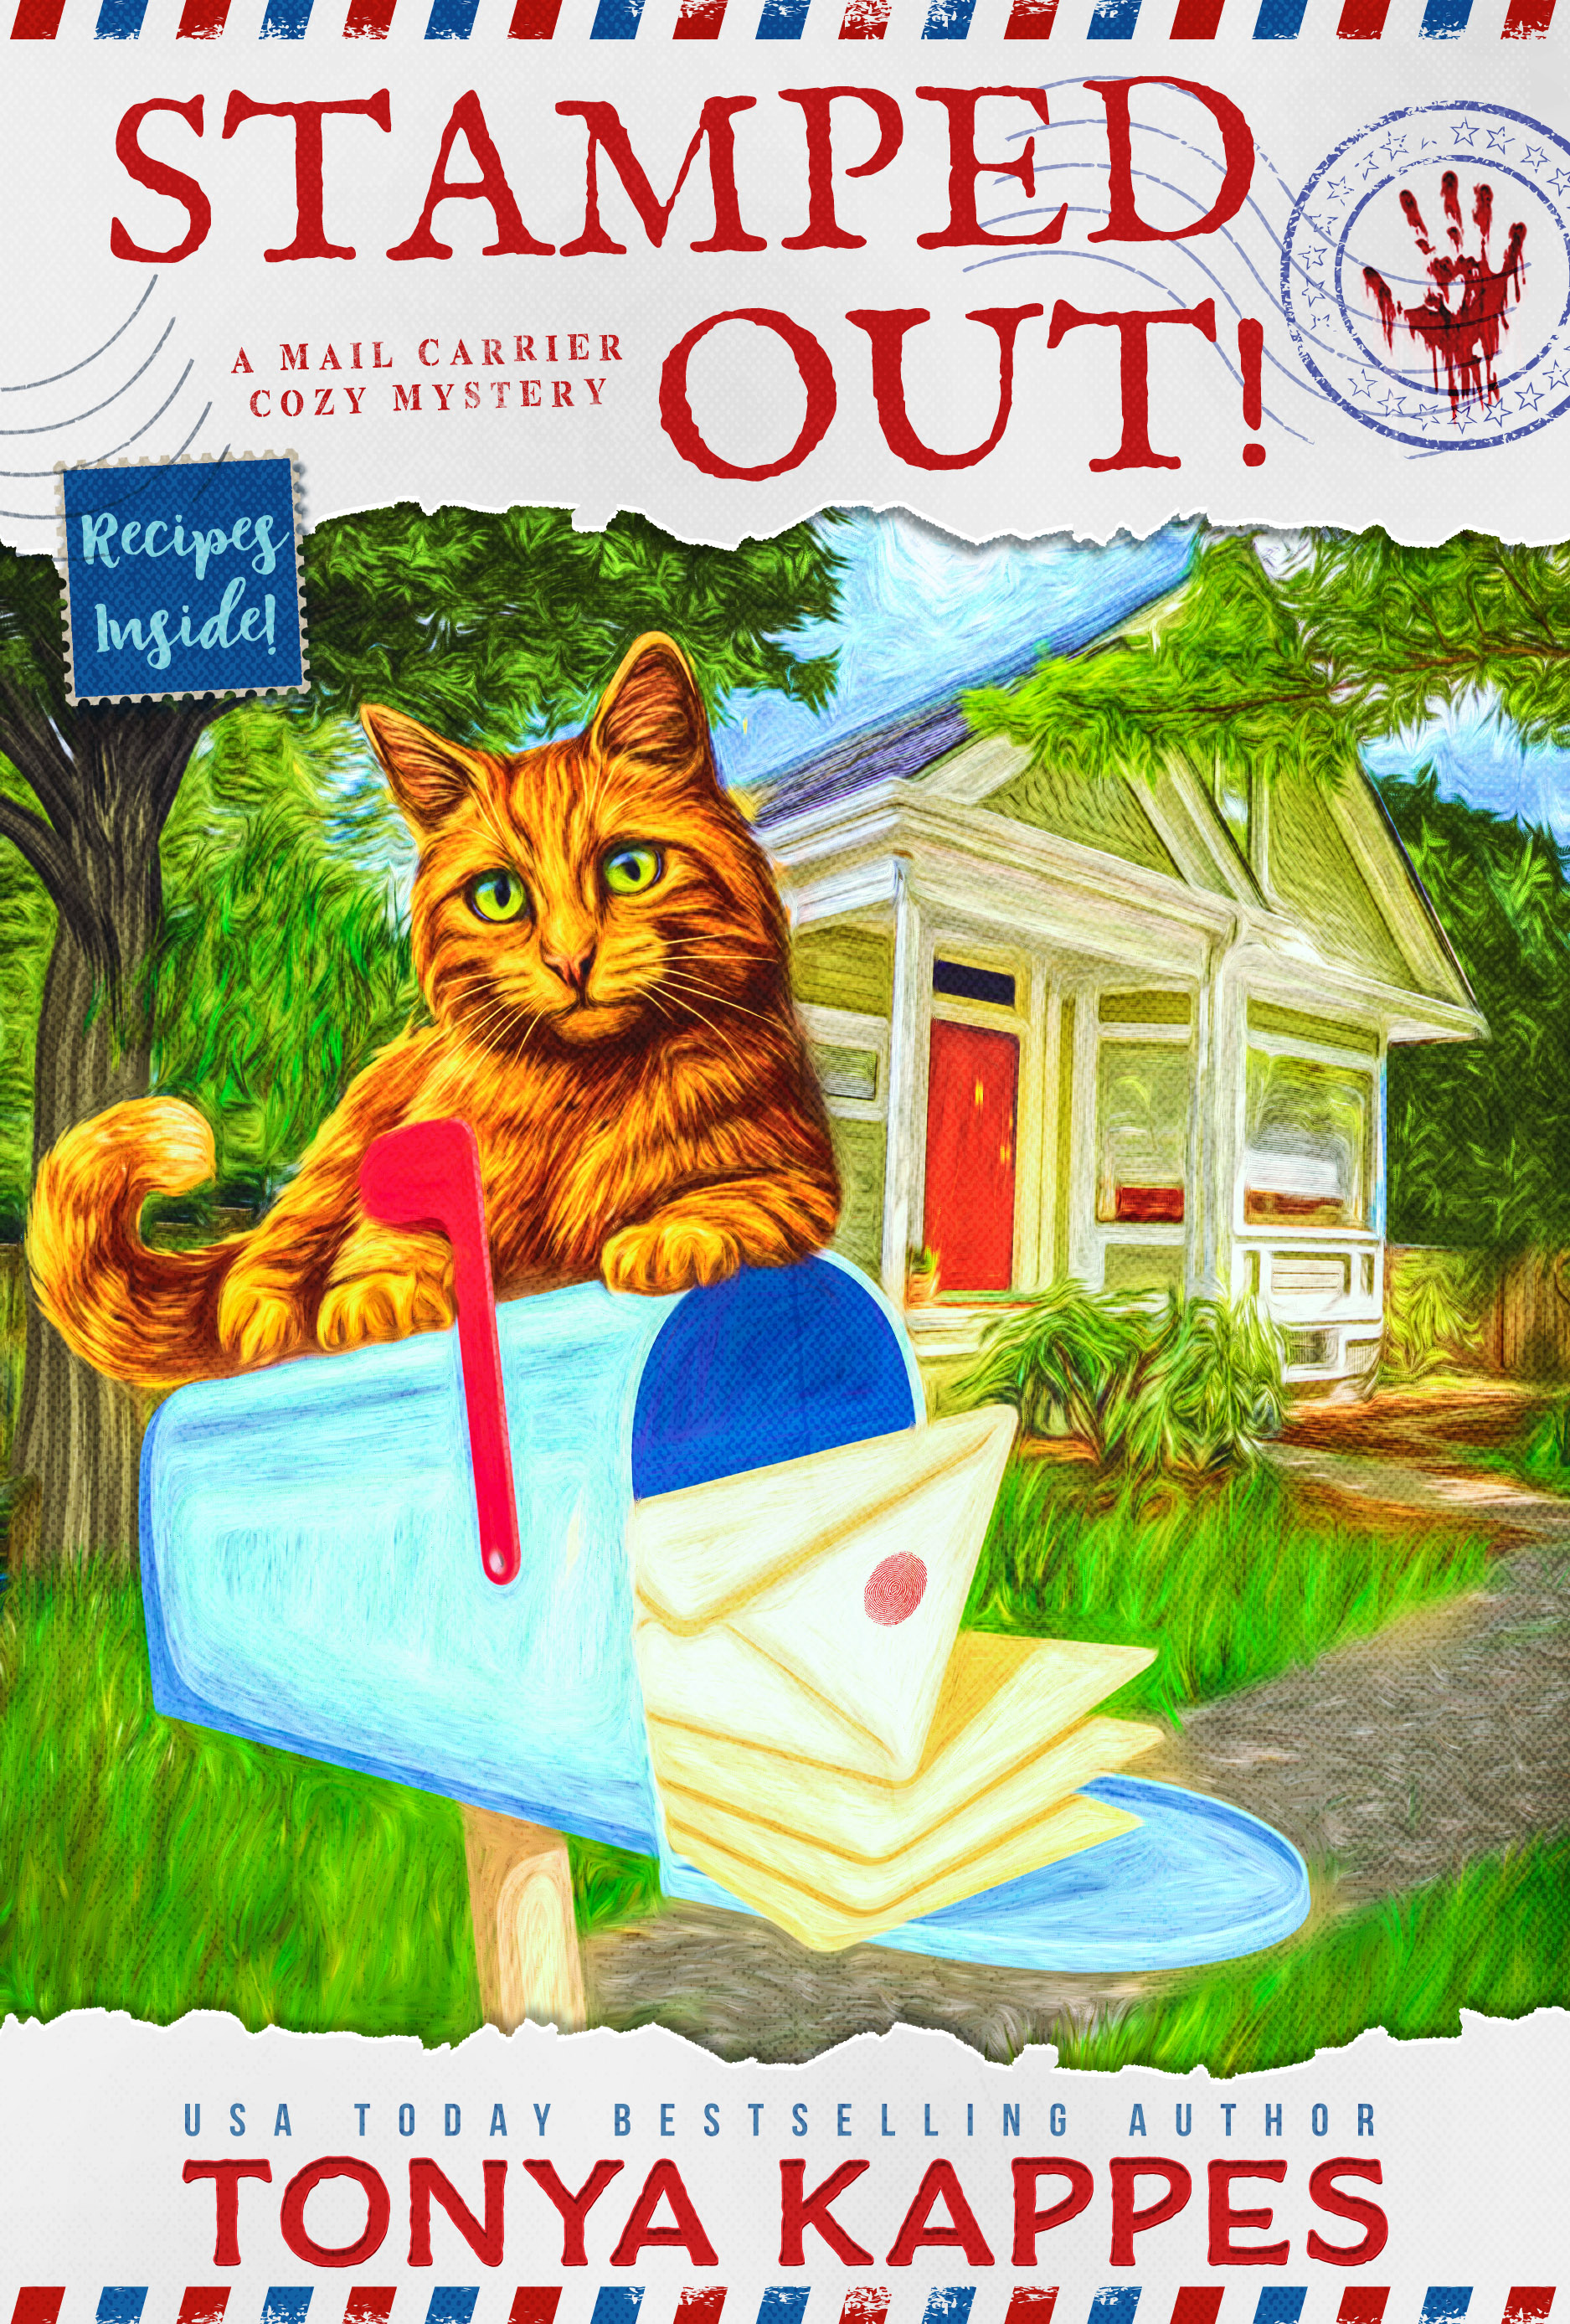 [PDF] [EPUB] Stamped Out (A Mail Carrier Cozy Mystery #1) Download by Tonya Kappes